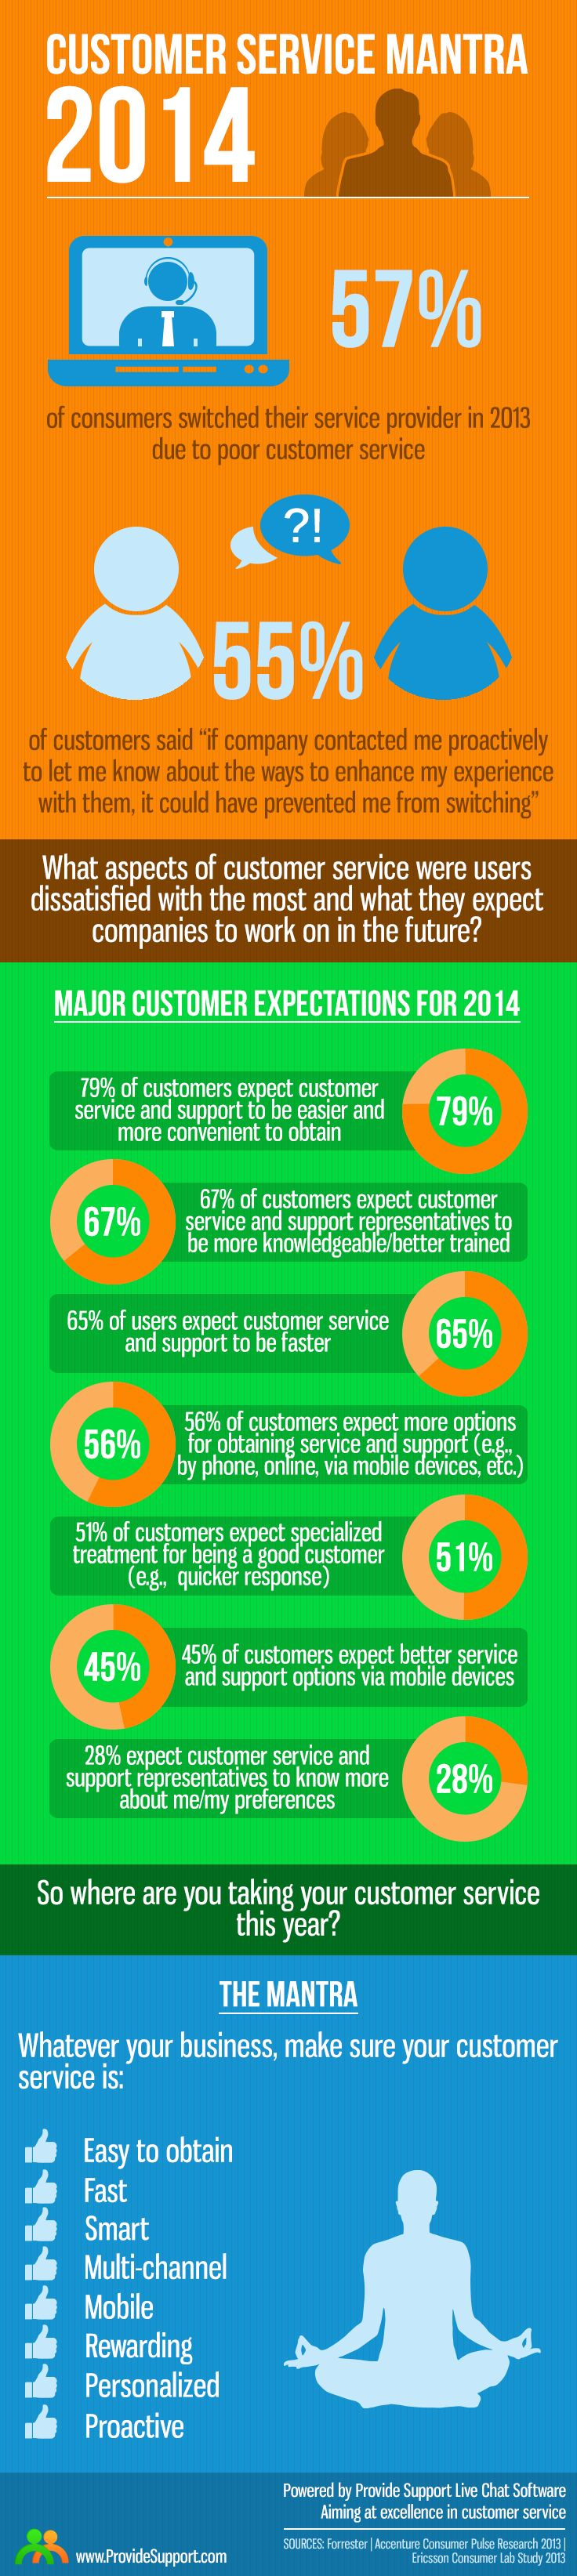 Customer Service Mantra 2014 [Infographics]: http://www.providesupport.com/blog/customer-service-mantra/ #custserv #customerservice #infographic